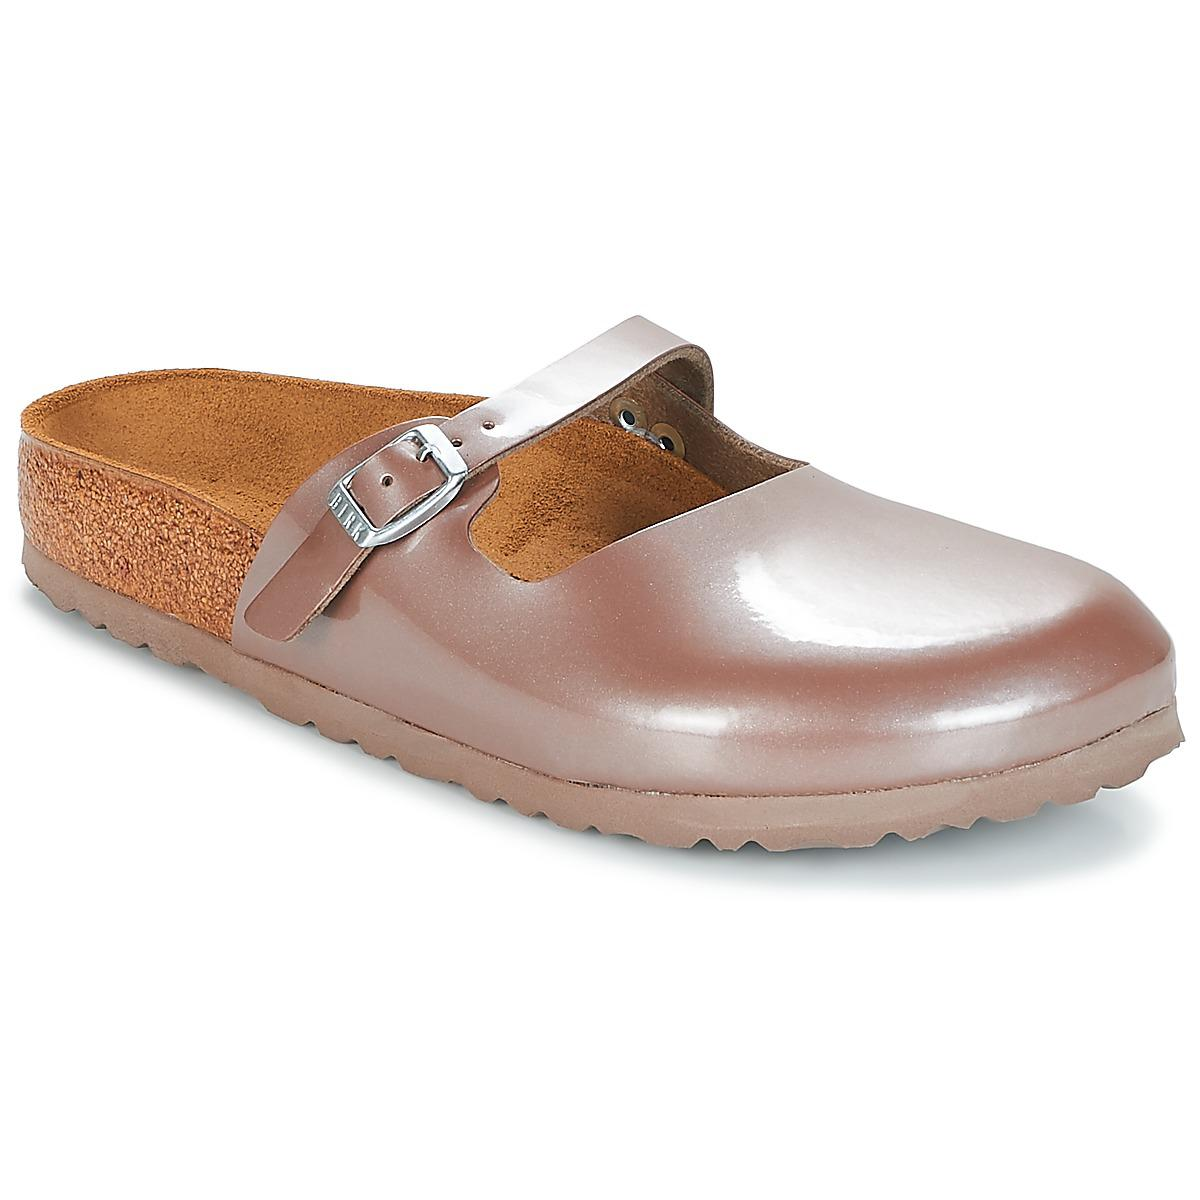 Birkenstock Maria Women s Mules   Casual Shoes In Pink in Pink ... c6b515f90a4